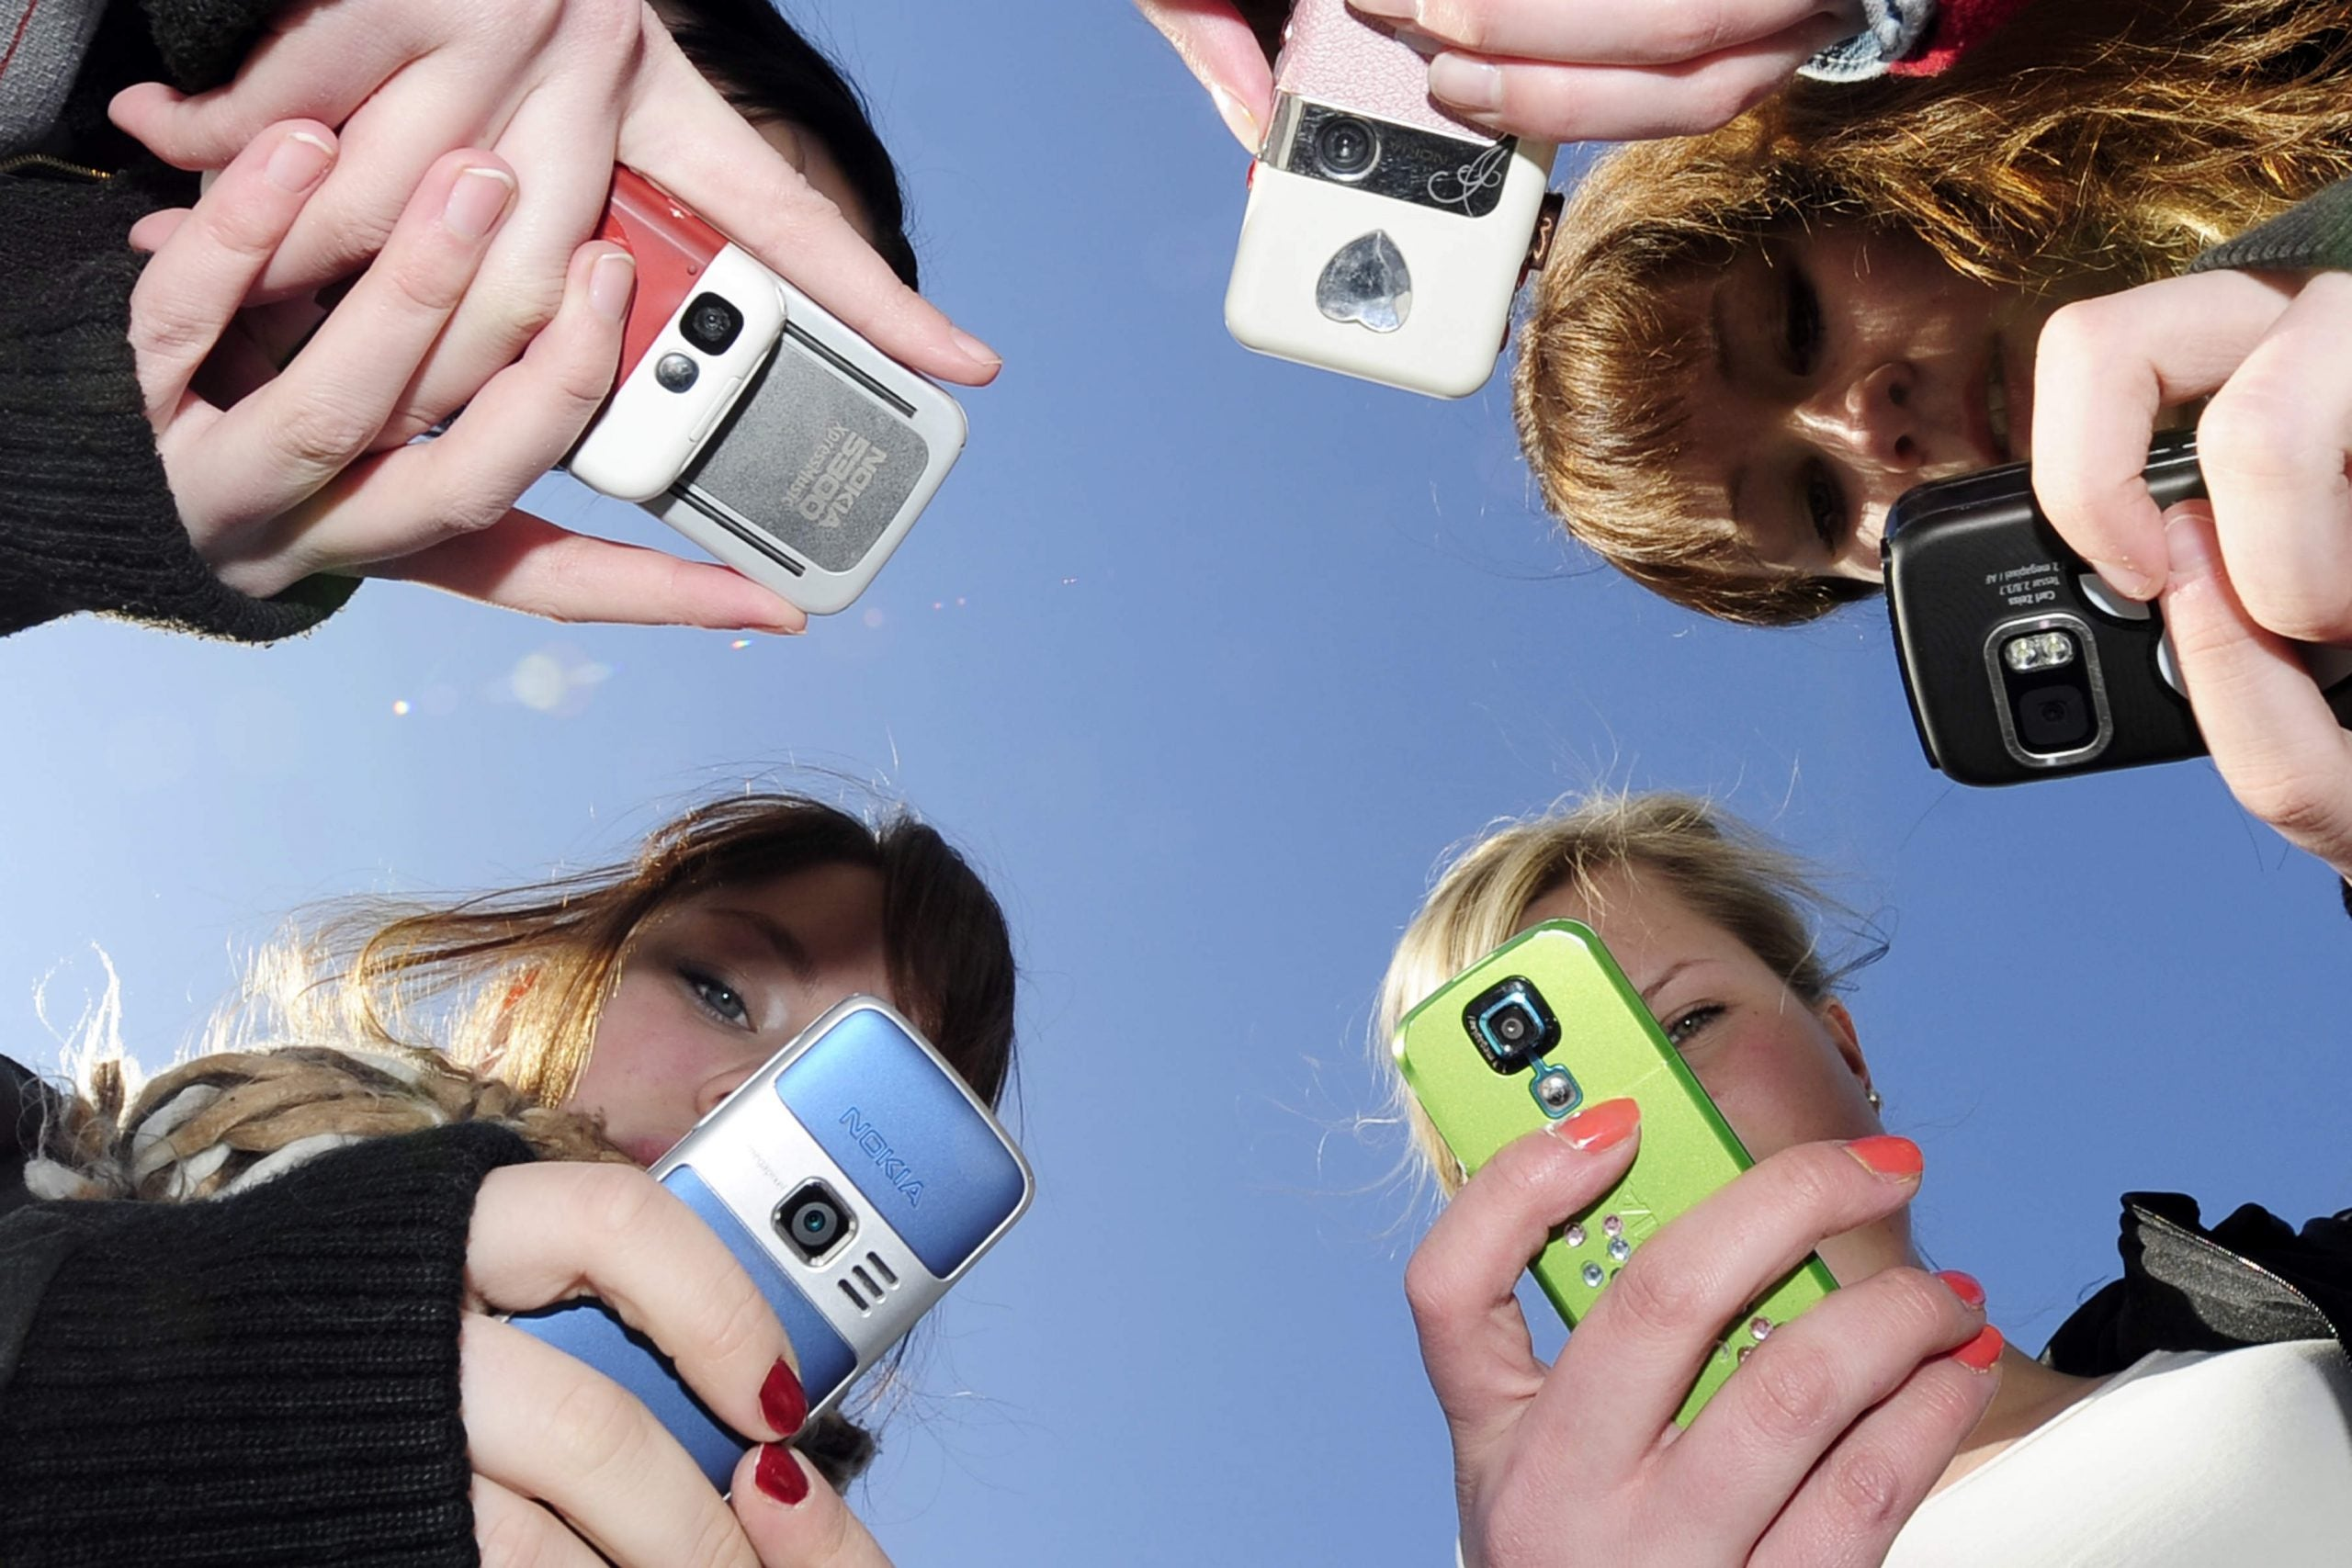 Hot or not: why teens can't stop rating each other online